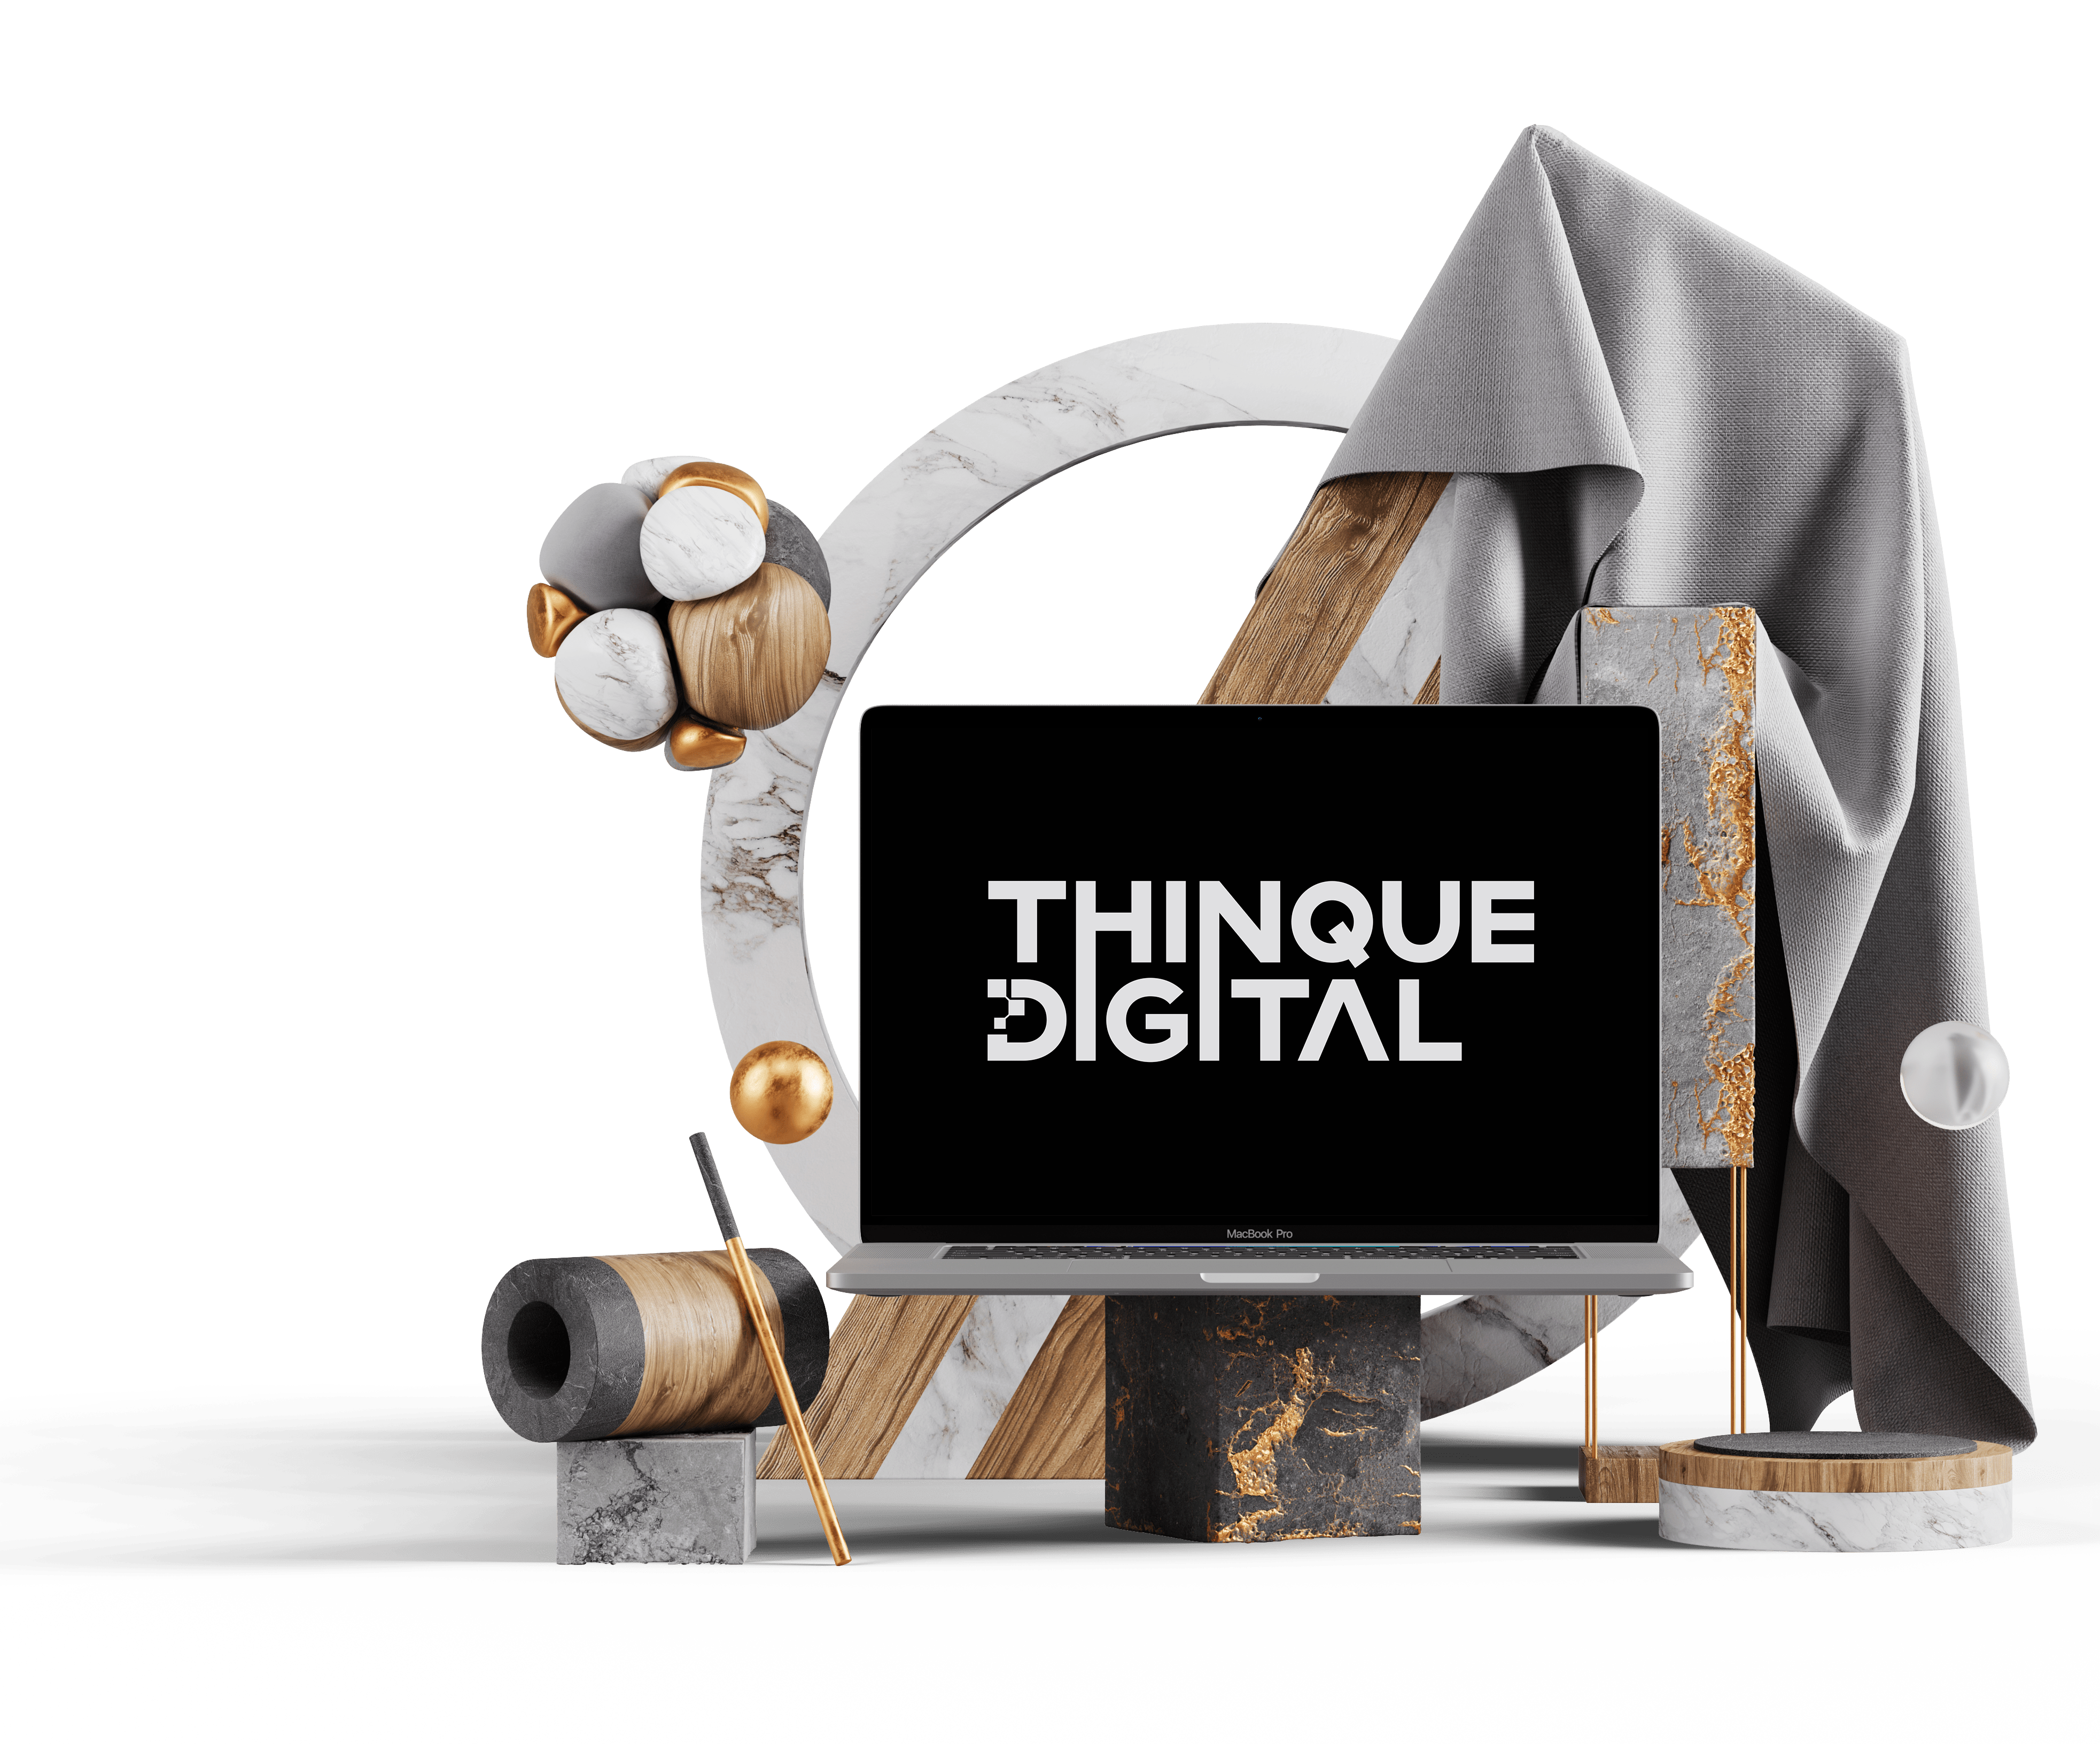 Thinque digital media agency for websites, e-commerce, graphic design and marketing